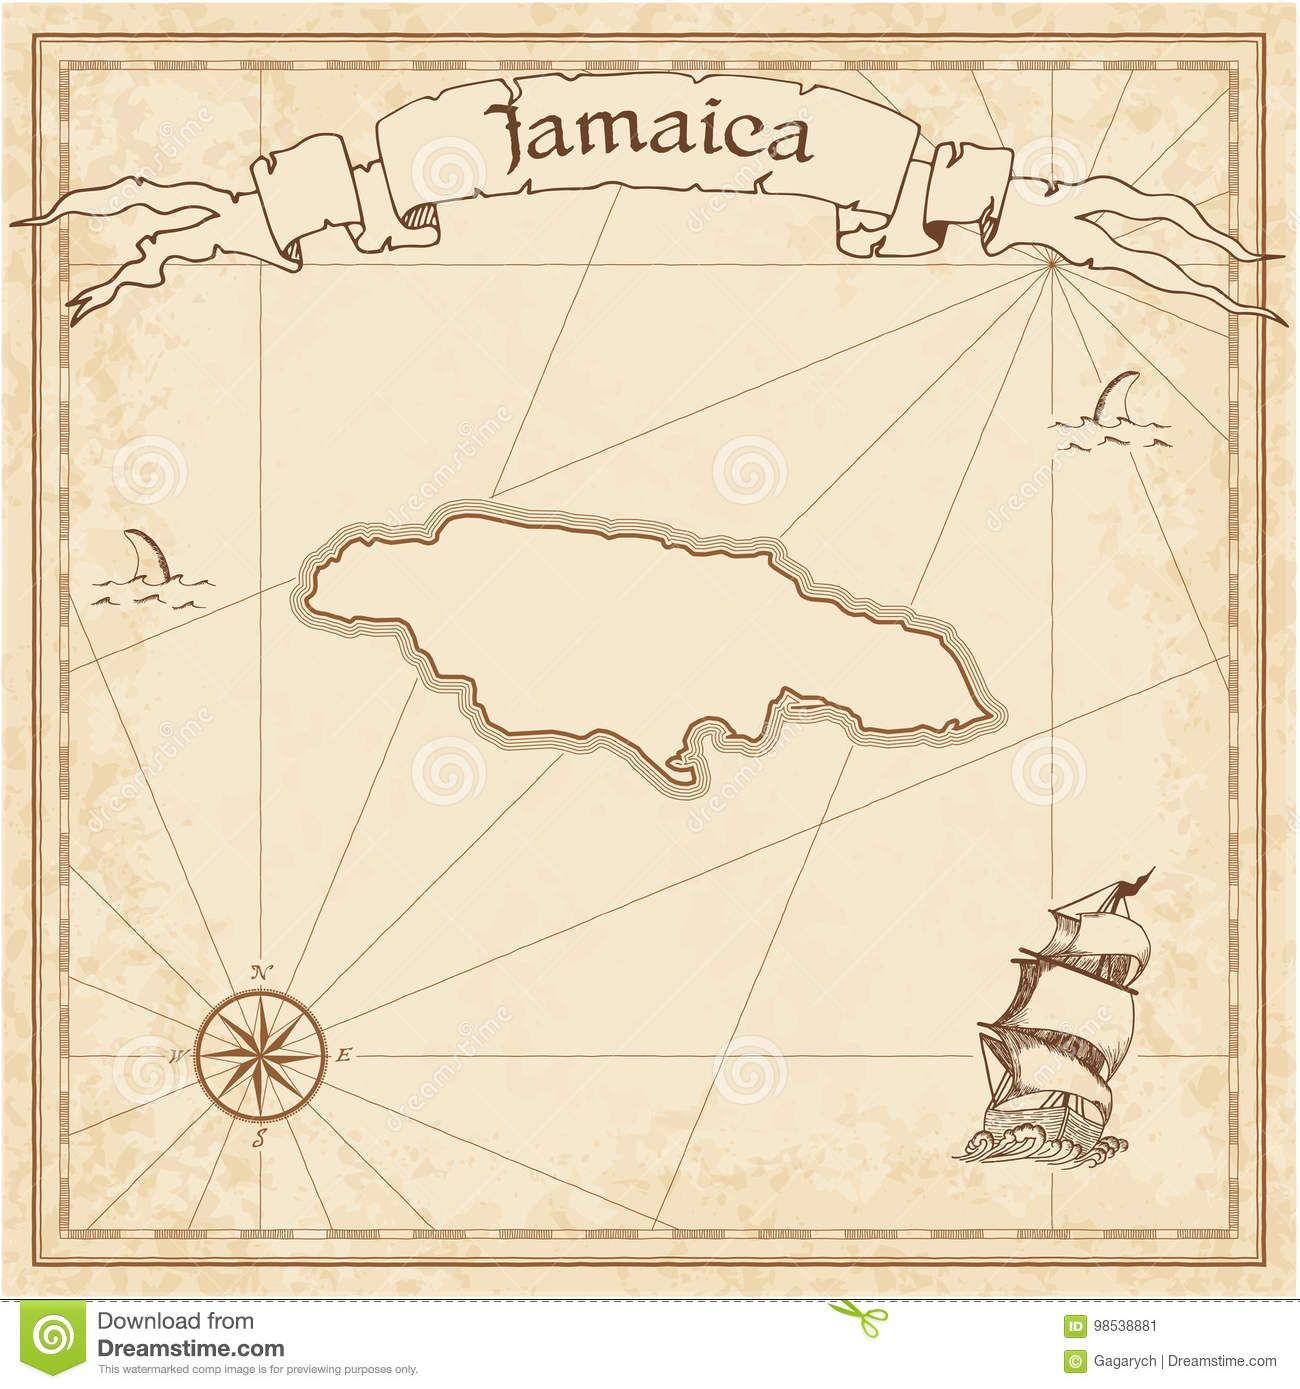 Jamaica Old Treasure Map Stock Vector Illustration Of Antique - Vintage map of jamaica